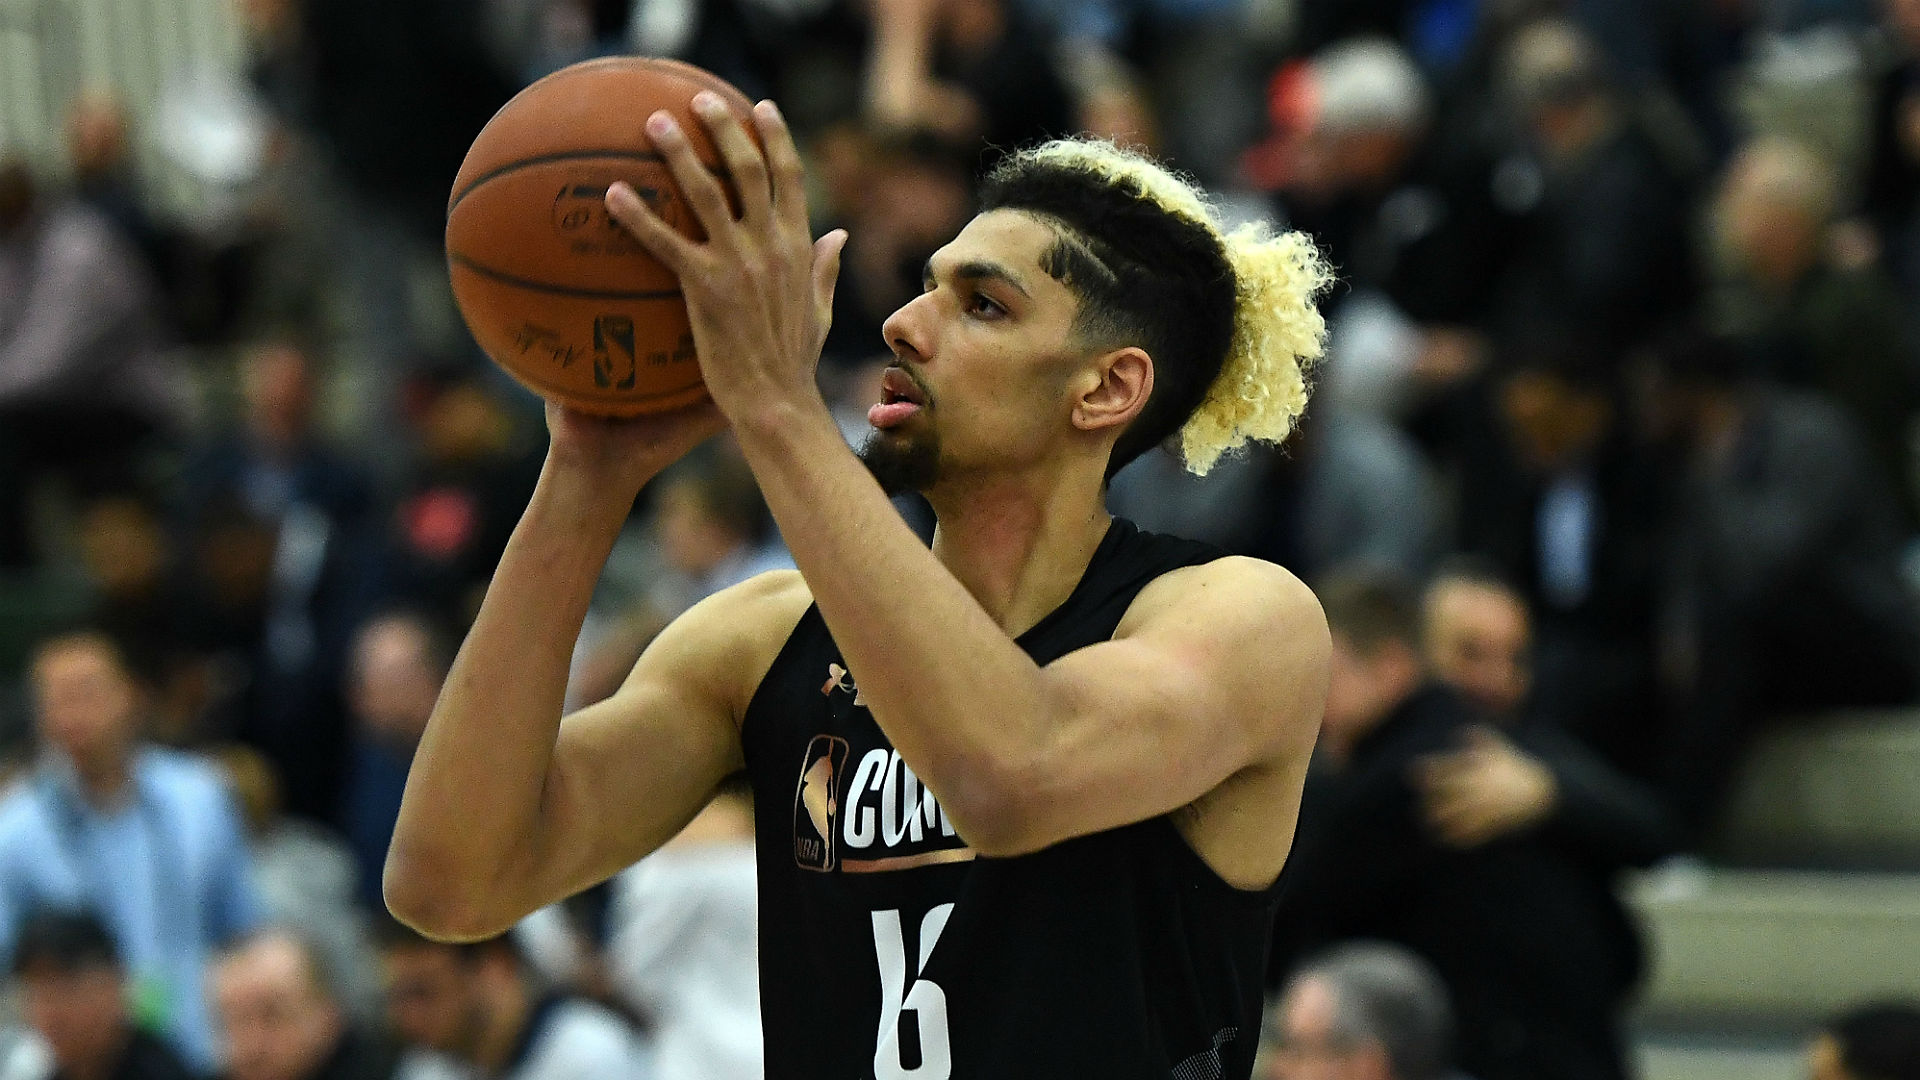 Former five-star recruit Brian Bowen sues Adidas in wake of scandal